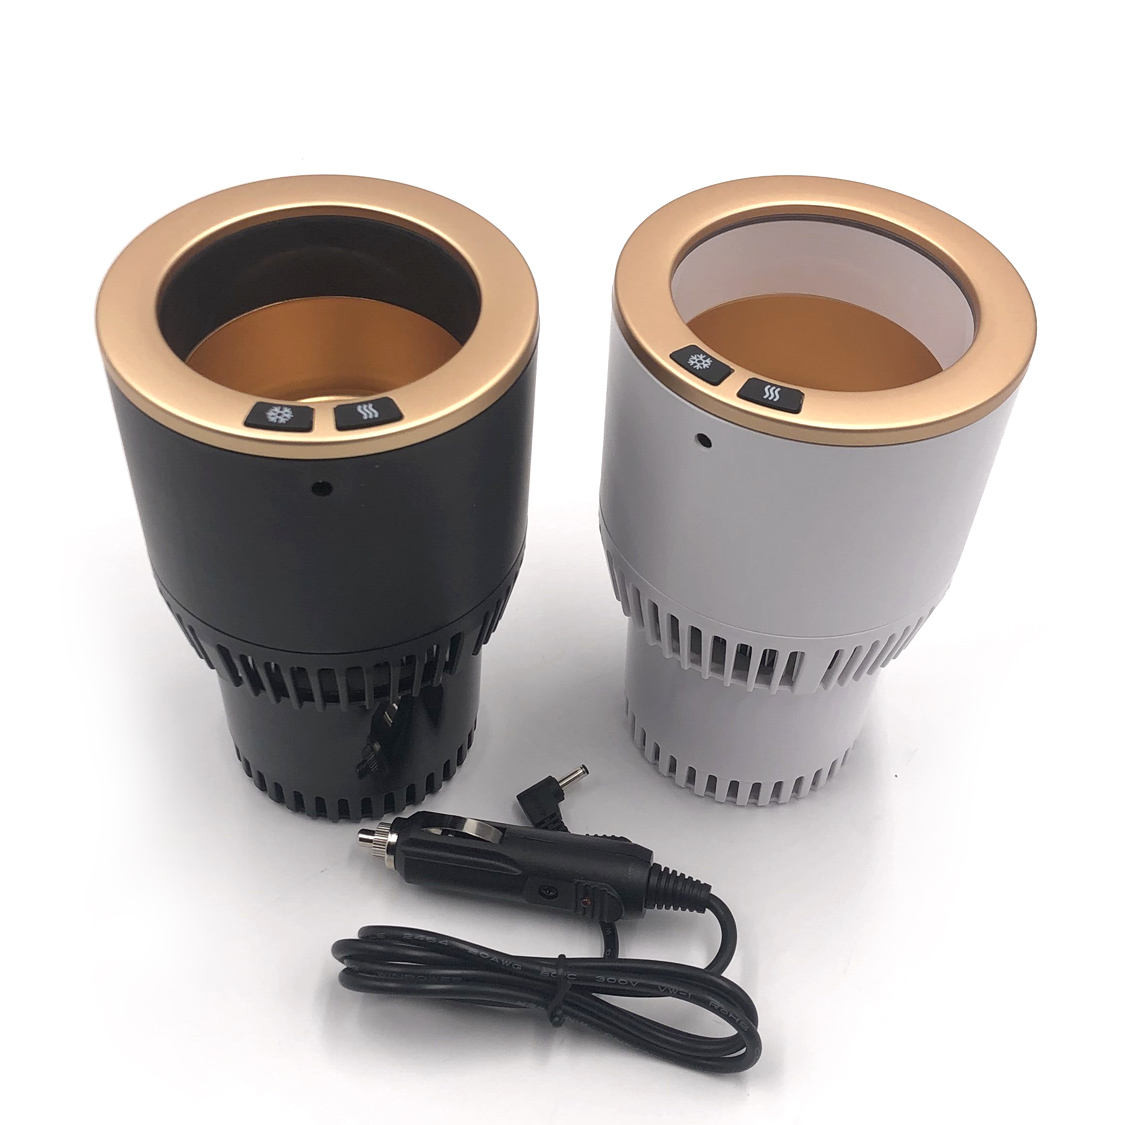 Car Accessories Interior Decorative Business Gift Sets Auto Car Smart Cup Holder